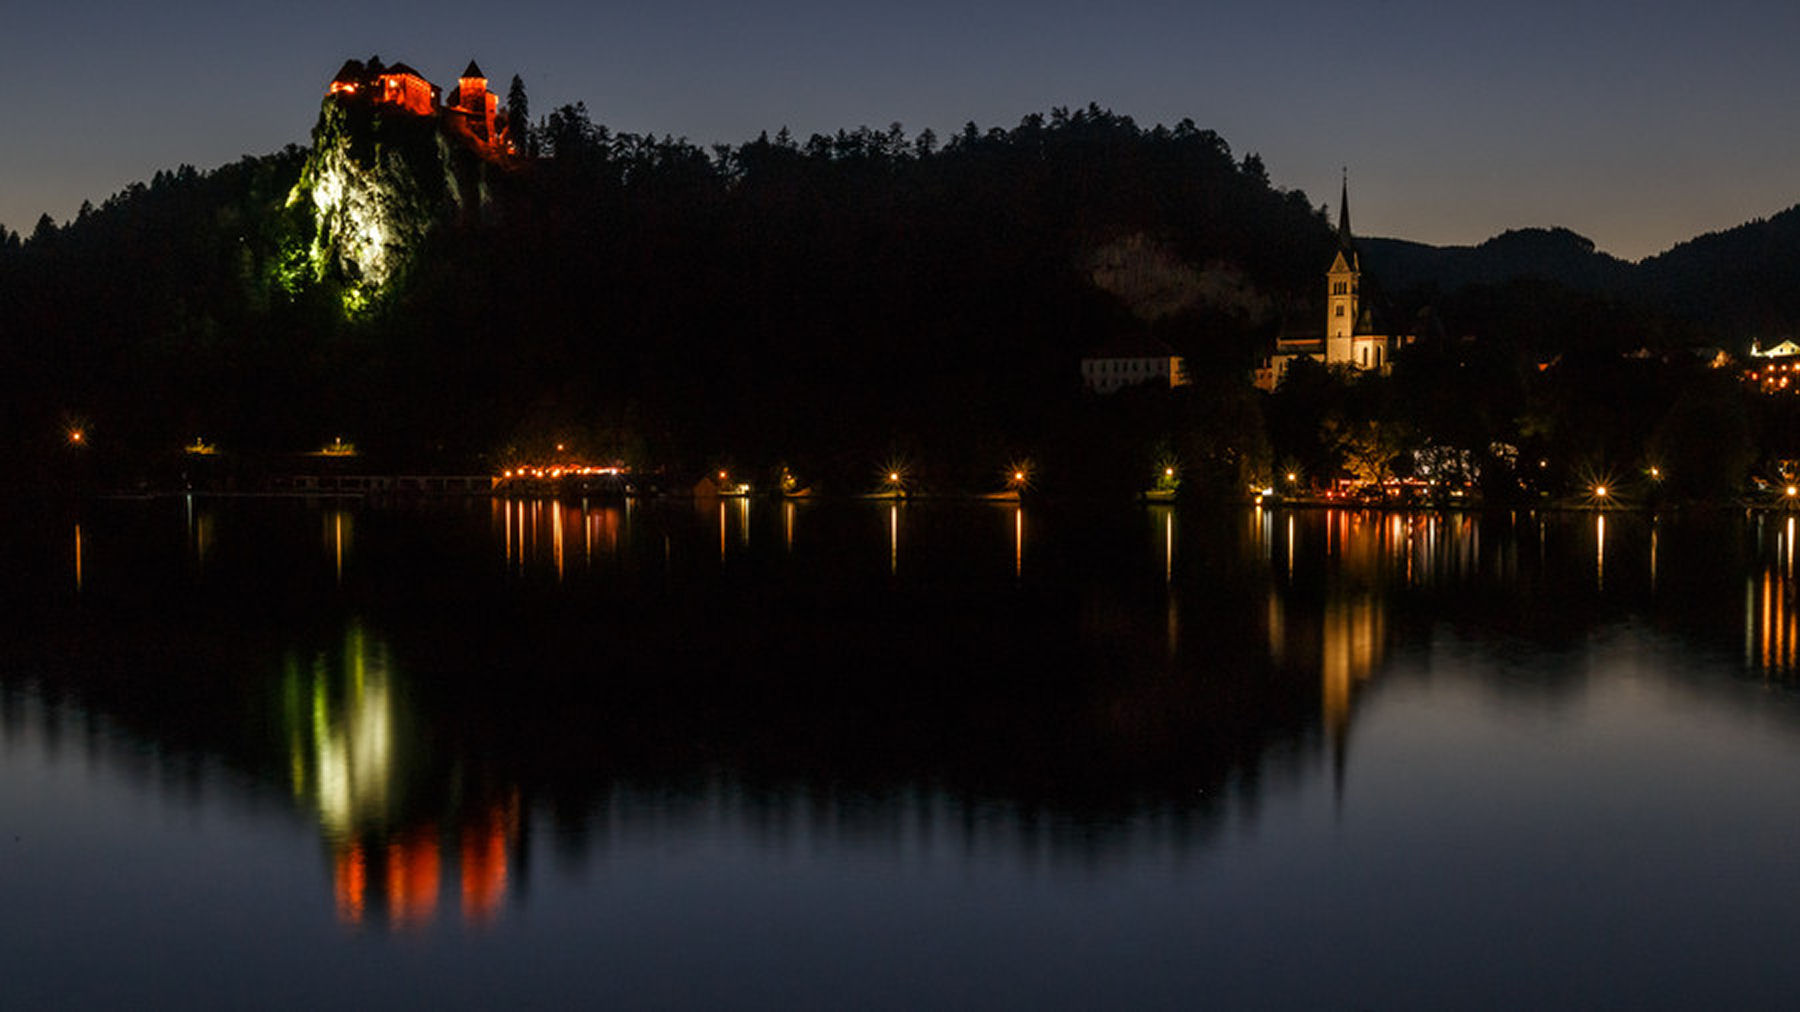 A walk by Lake Bled when lit up at night is truly magical